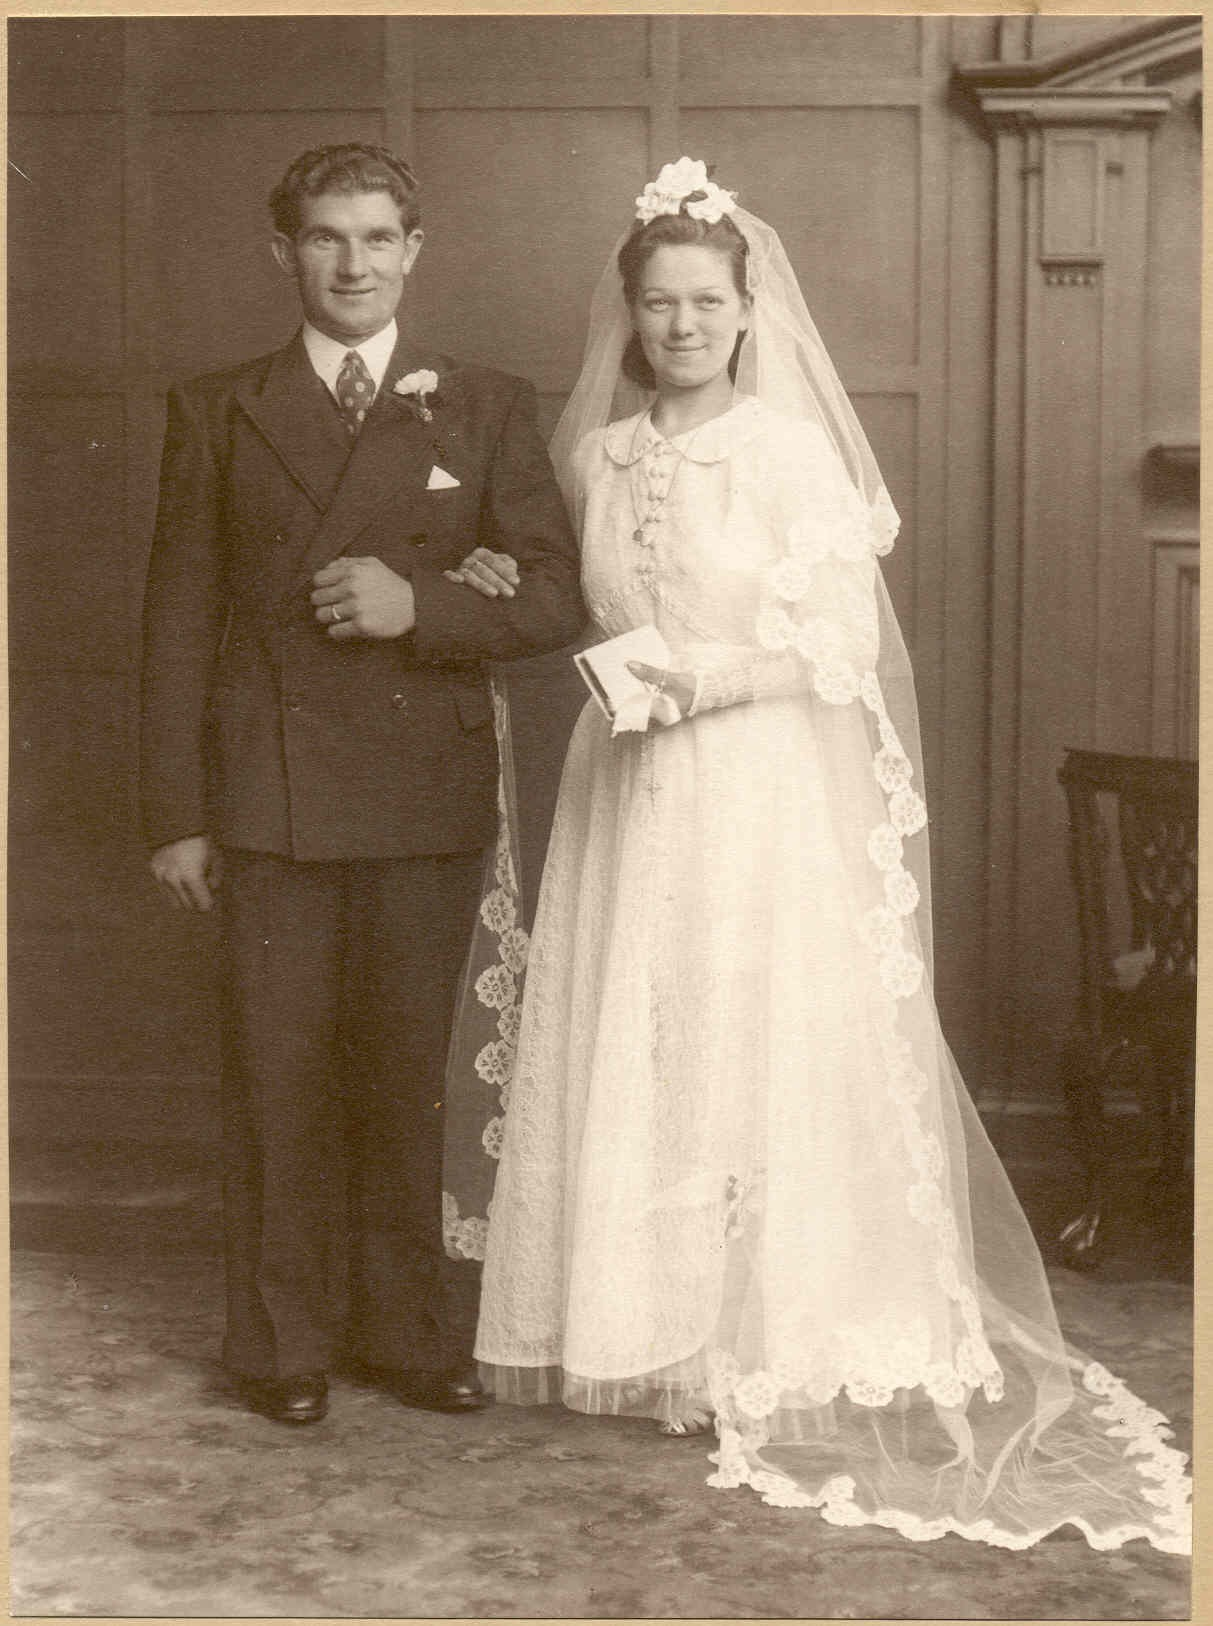 wartime weddings wedding dresses Edna Michael Thomson 27th August